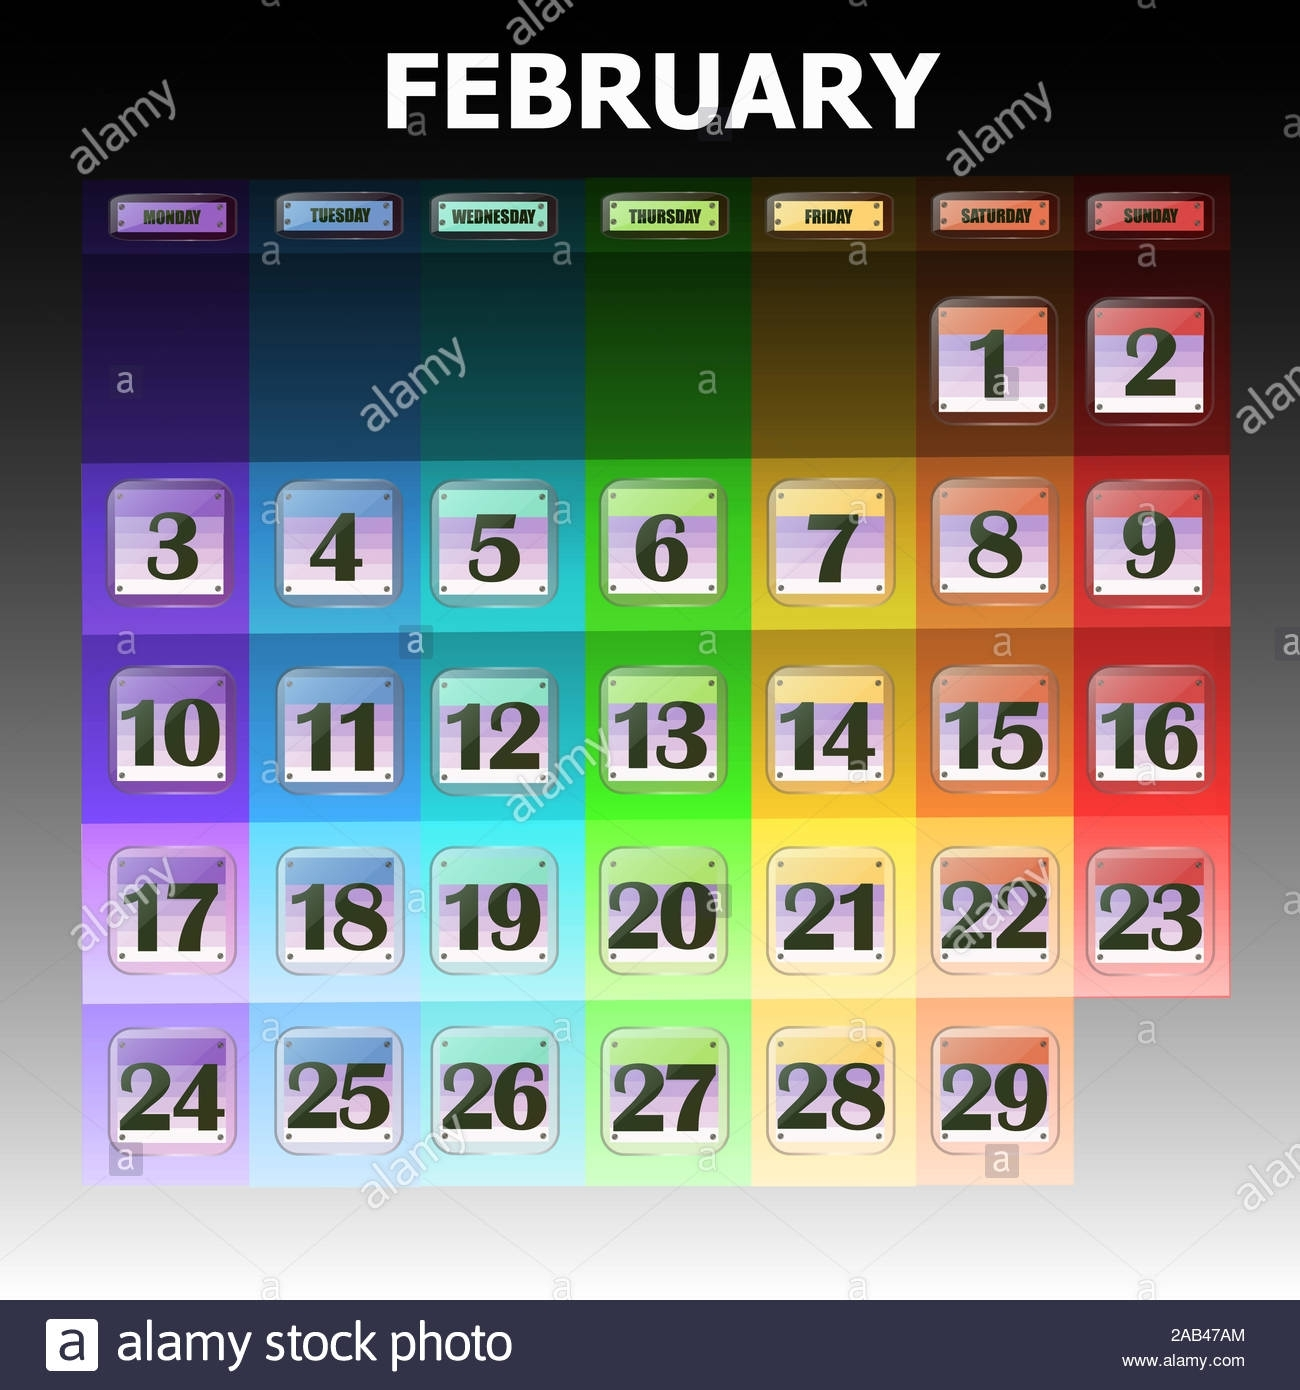 Colorful Calendar For February 2020 In English. Set Of throughout What Are The Special Days In 2020